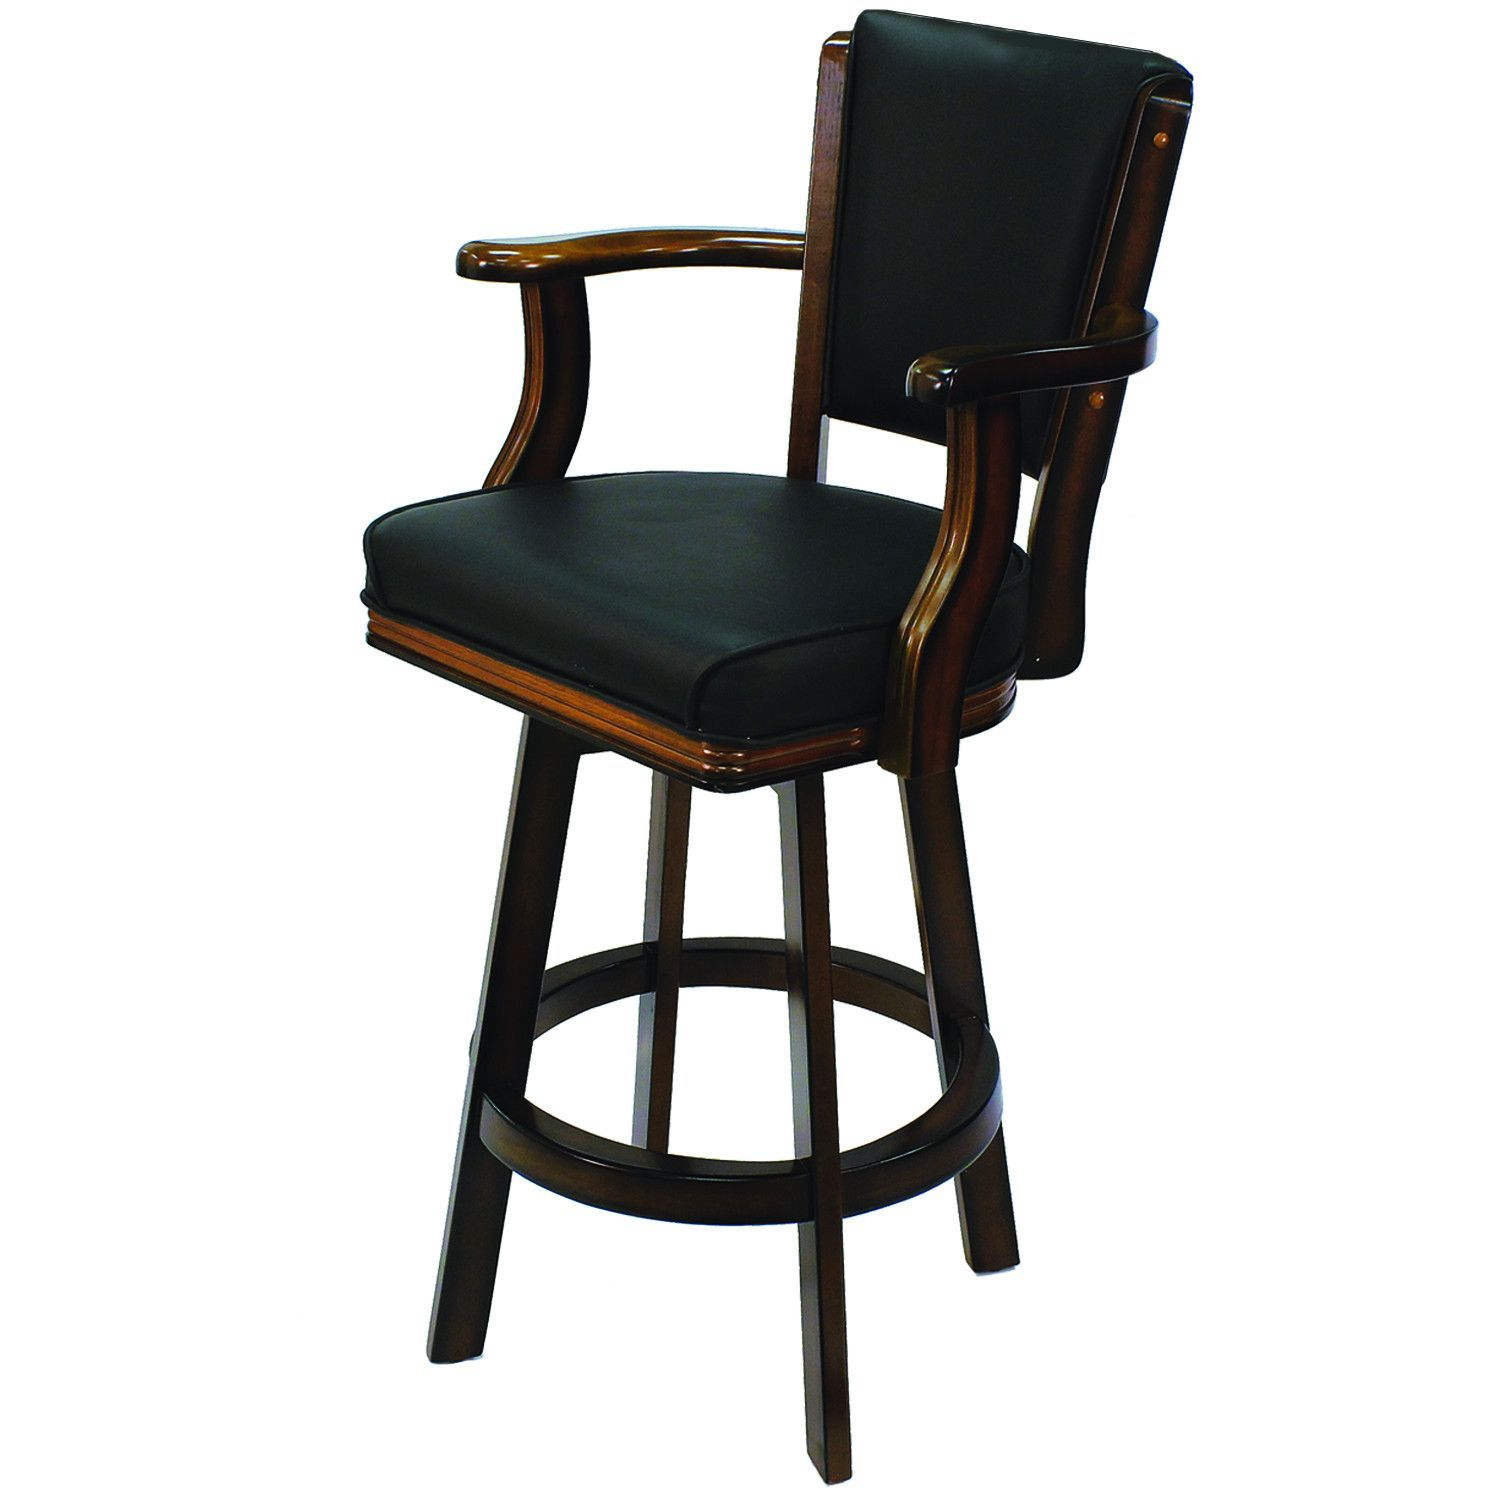 Chestnut Backed Bar Stool with Arms & Swivel